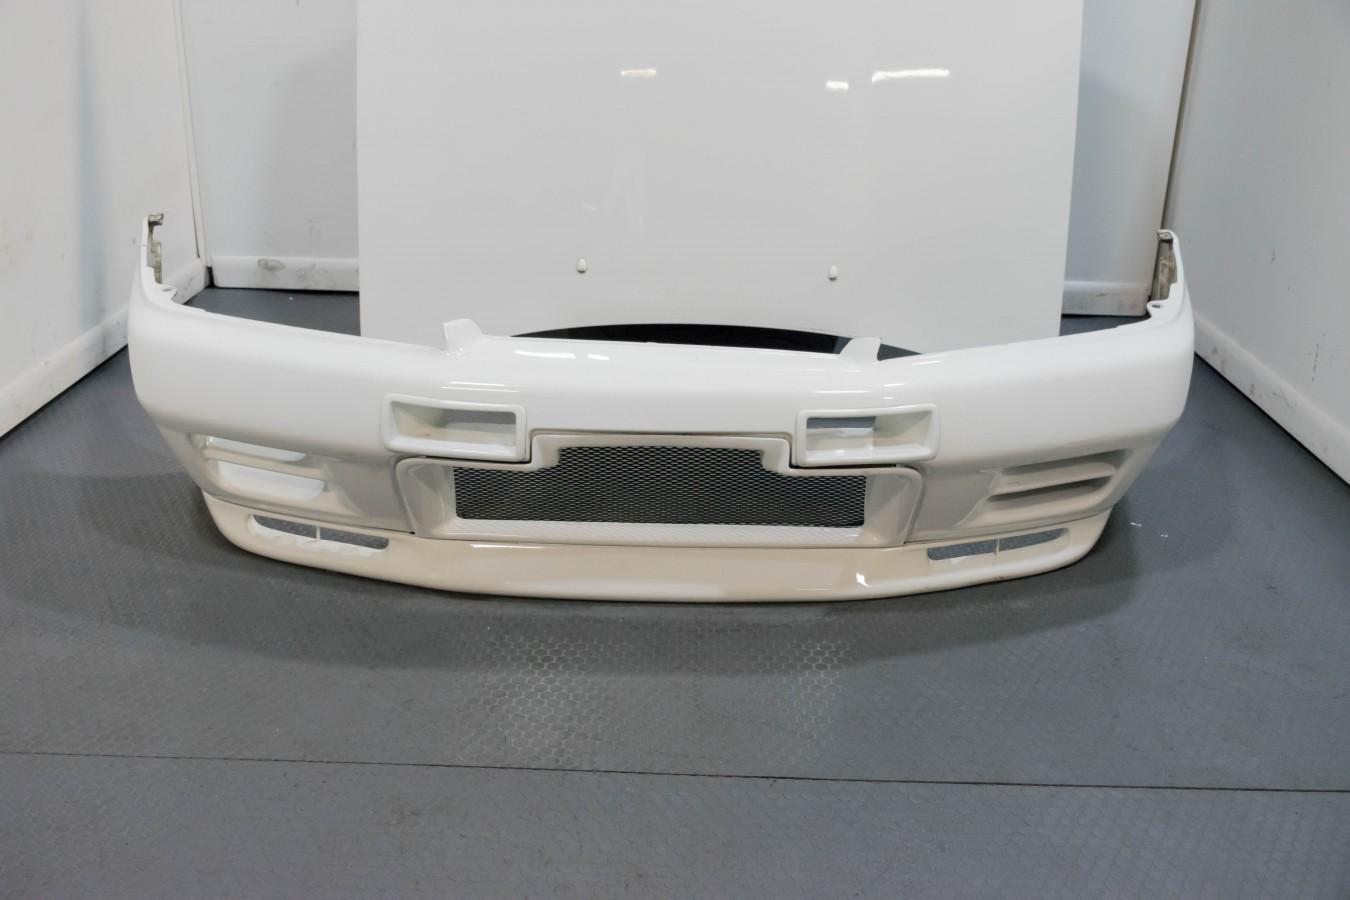 JDM Nissan Skyline GTR BNR32 Complete Front Clip with Nismo N1 Style Front  Bumper, Fenders and Hood